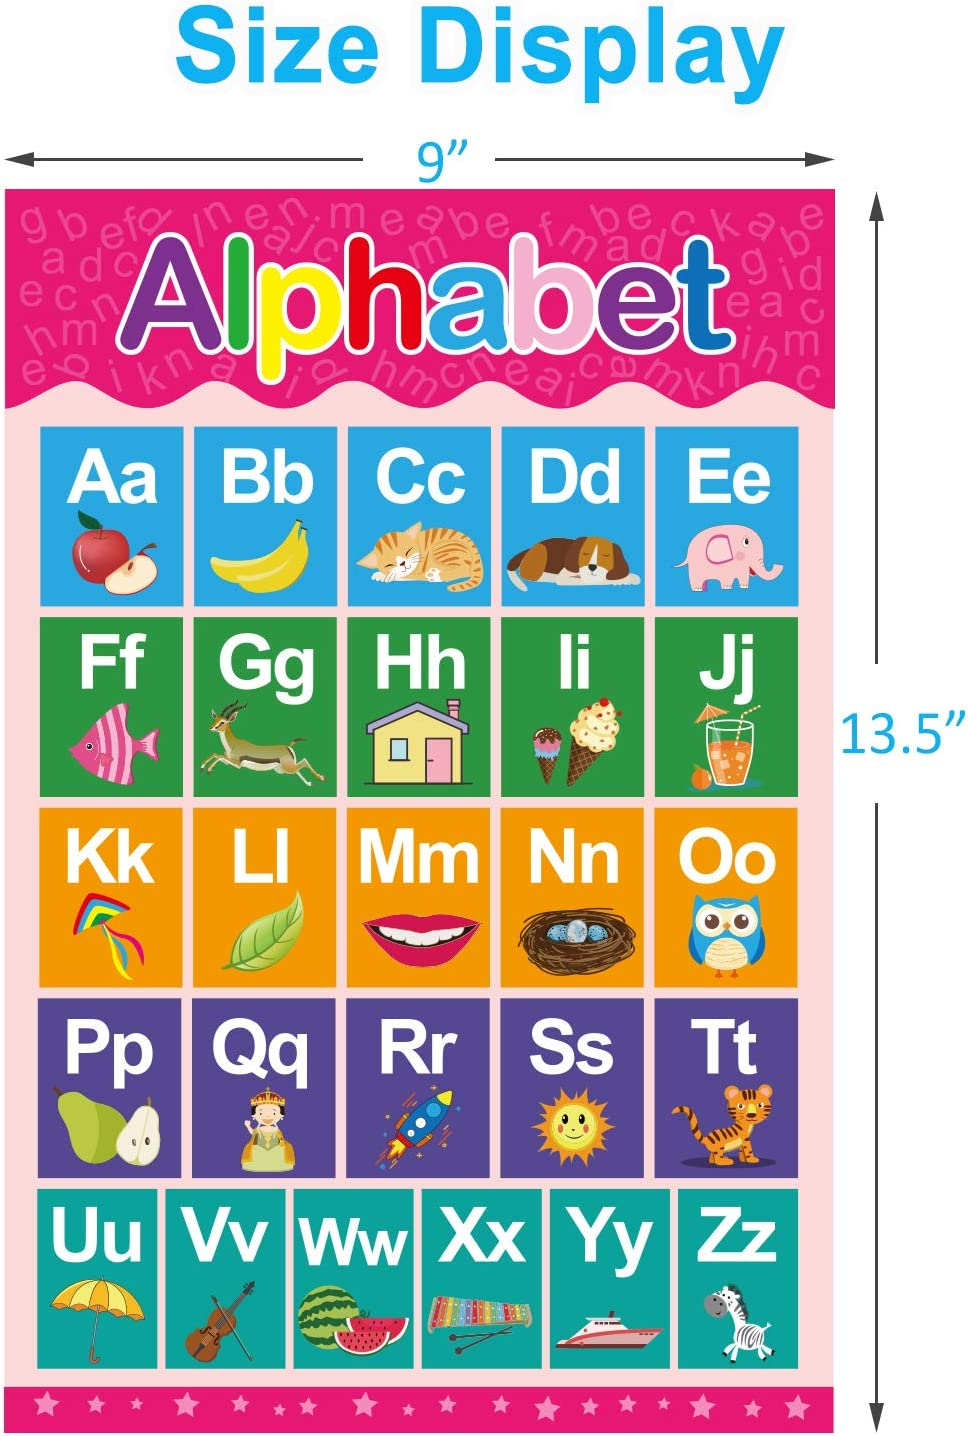 12 Pack Yoklili Educational Preschool Posters for Toddlers and Kids Classroom Nursery Homeschool Kindergarten Learning Alphabet Numbers Shapes Colors Days